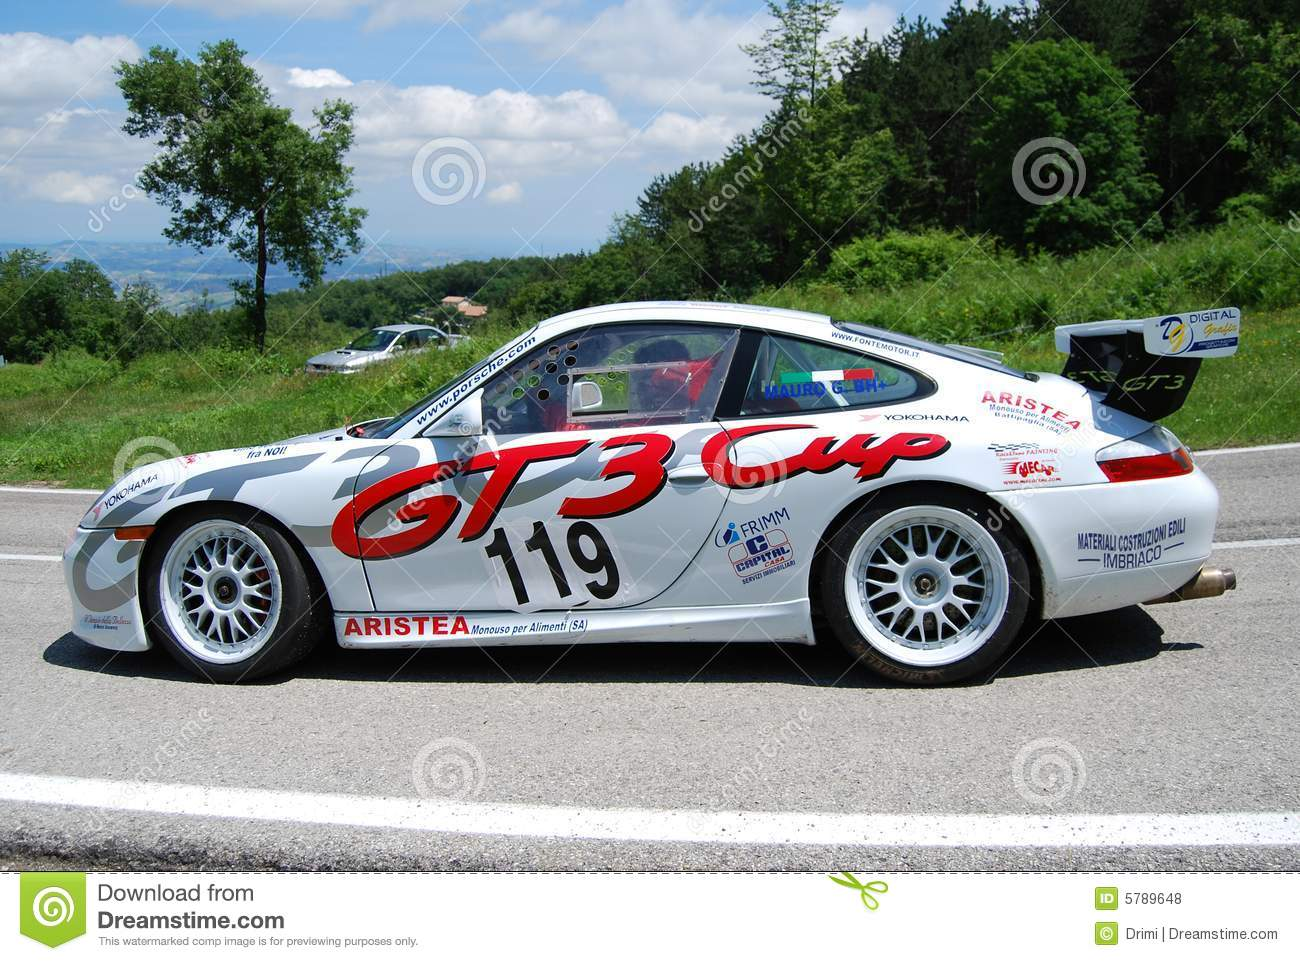 996 GT3 Cup 2004 for sale - Rennlist Discussion Forums